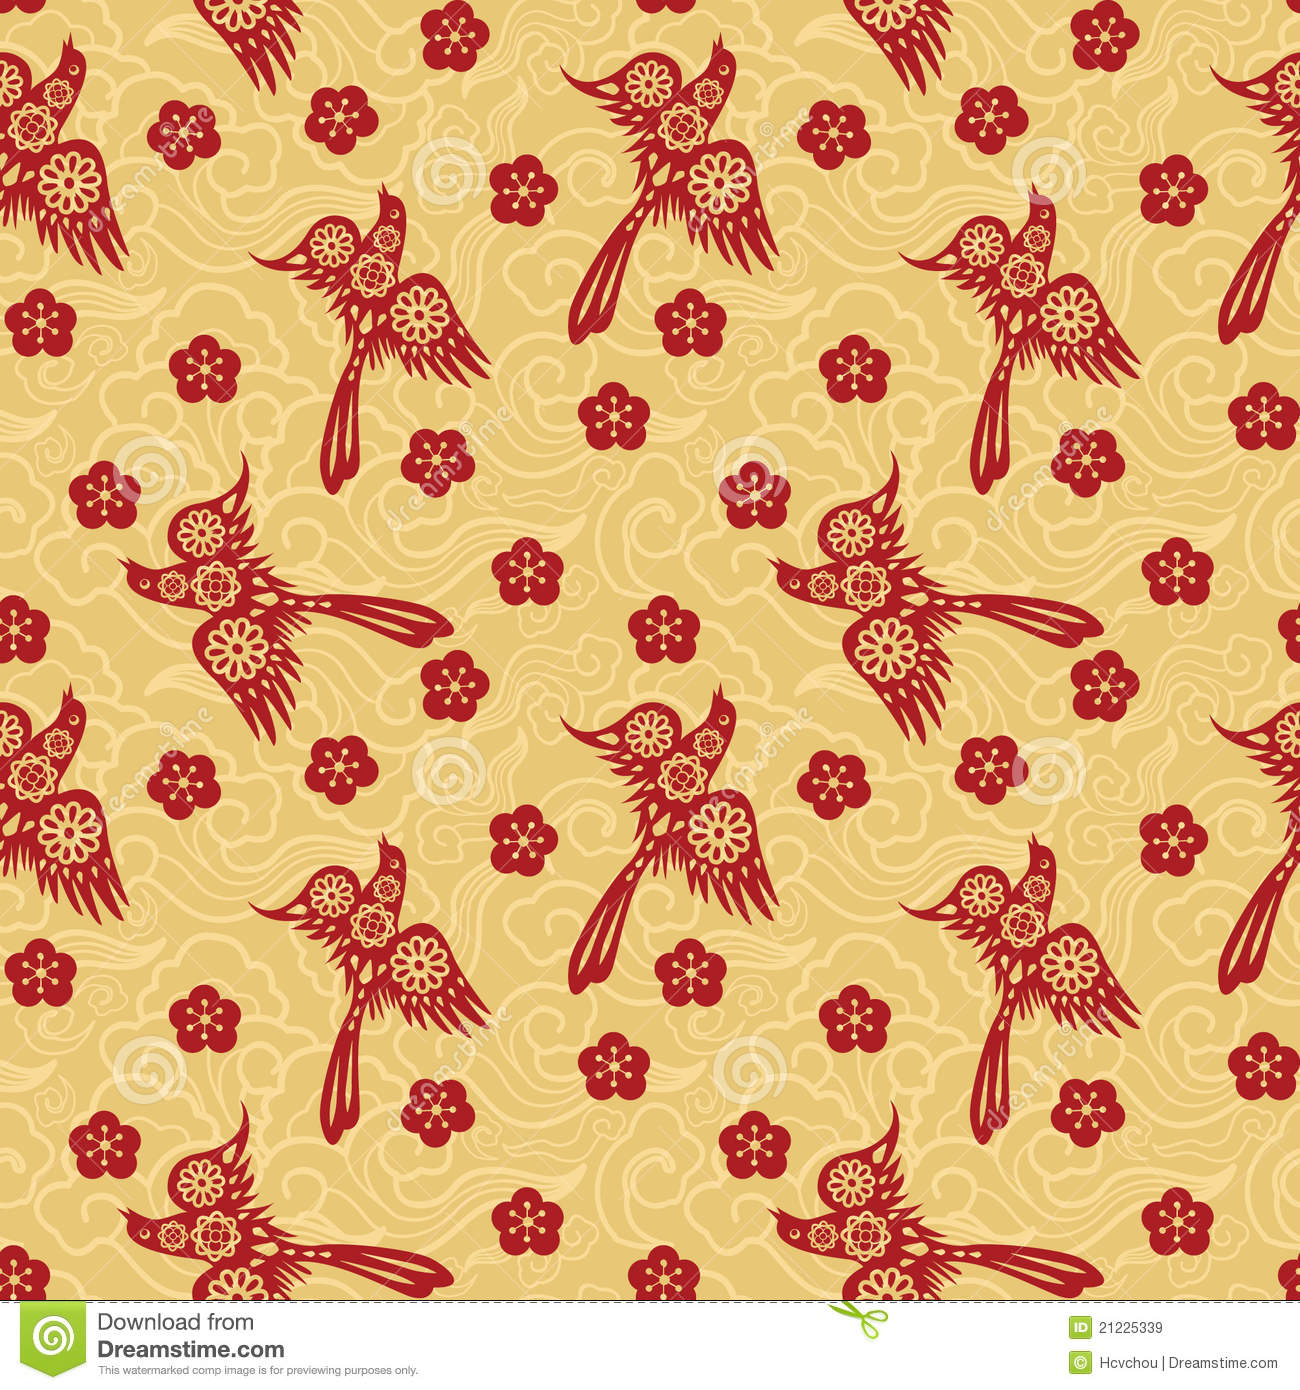 Https Www Dreamstime Com Royalty Free Stock Images Chinese Pattern Background Image21225339